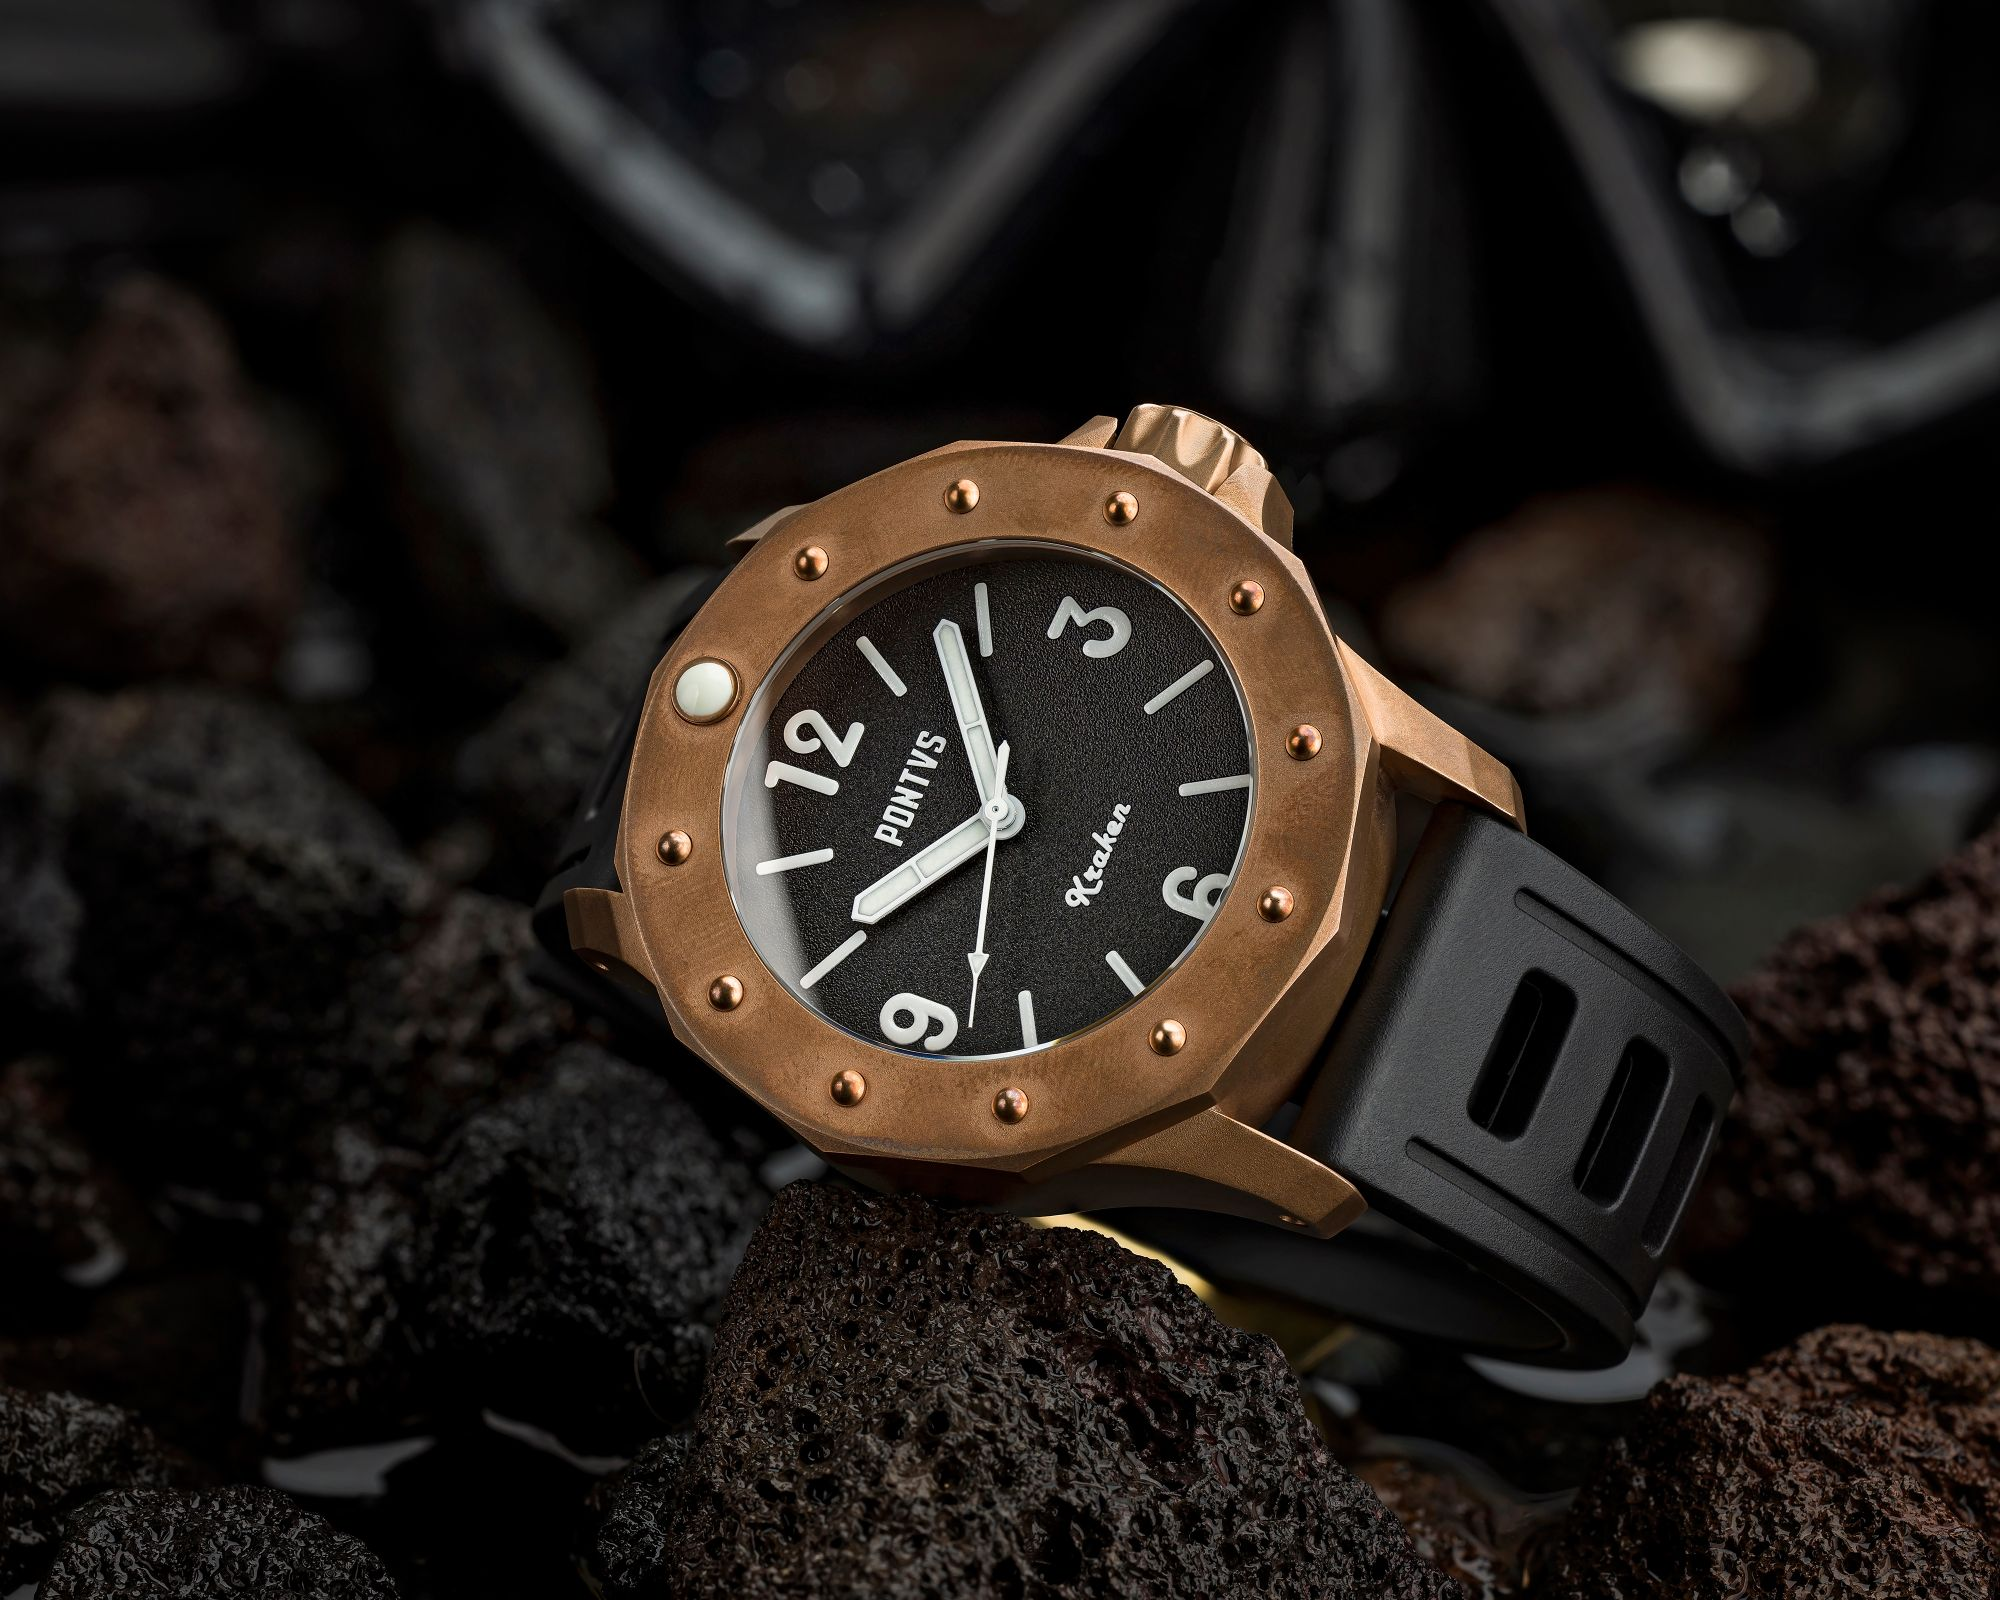 The company's latest dive watch, the Pontvs Kraken, takes its name from one of the mightiest sea monsters from Scandinavian folklore.